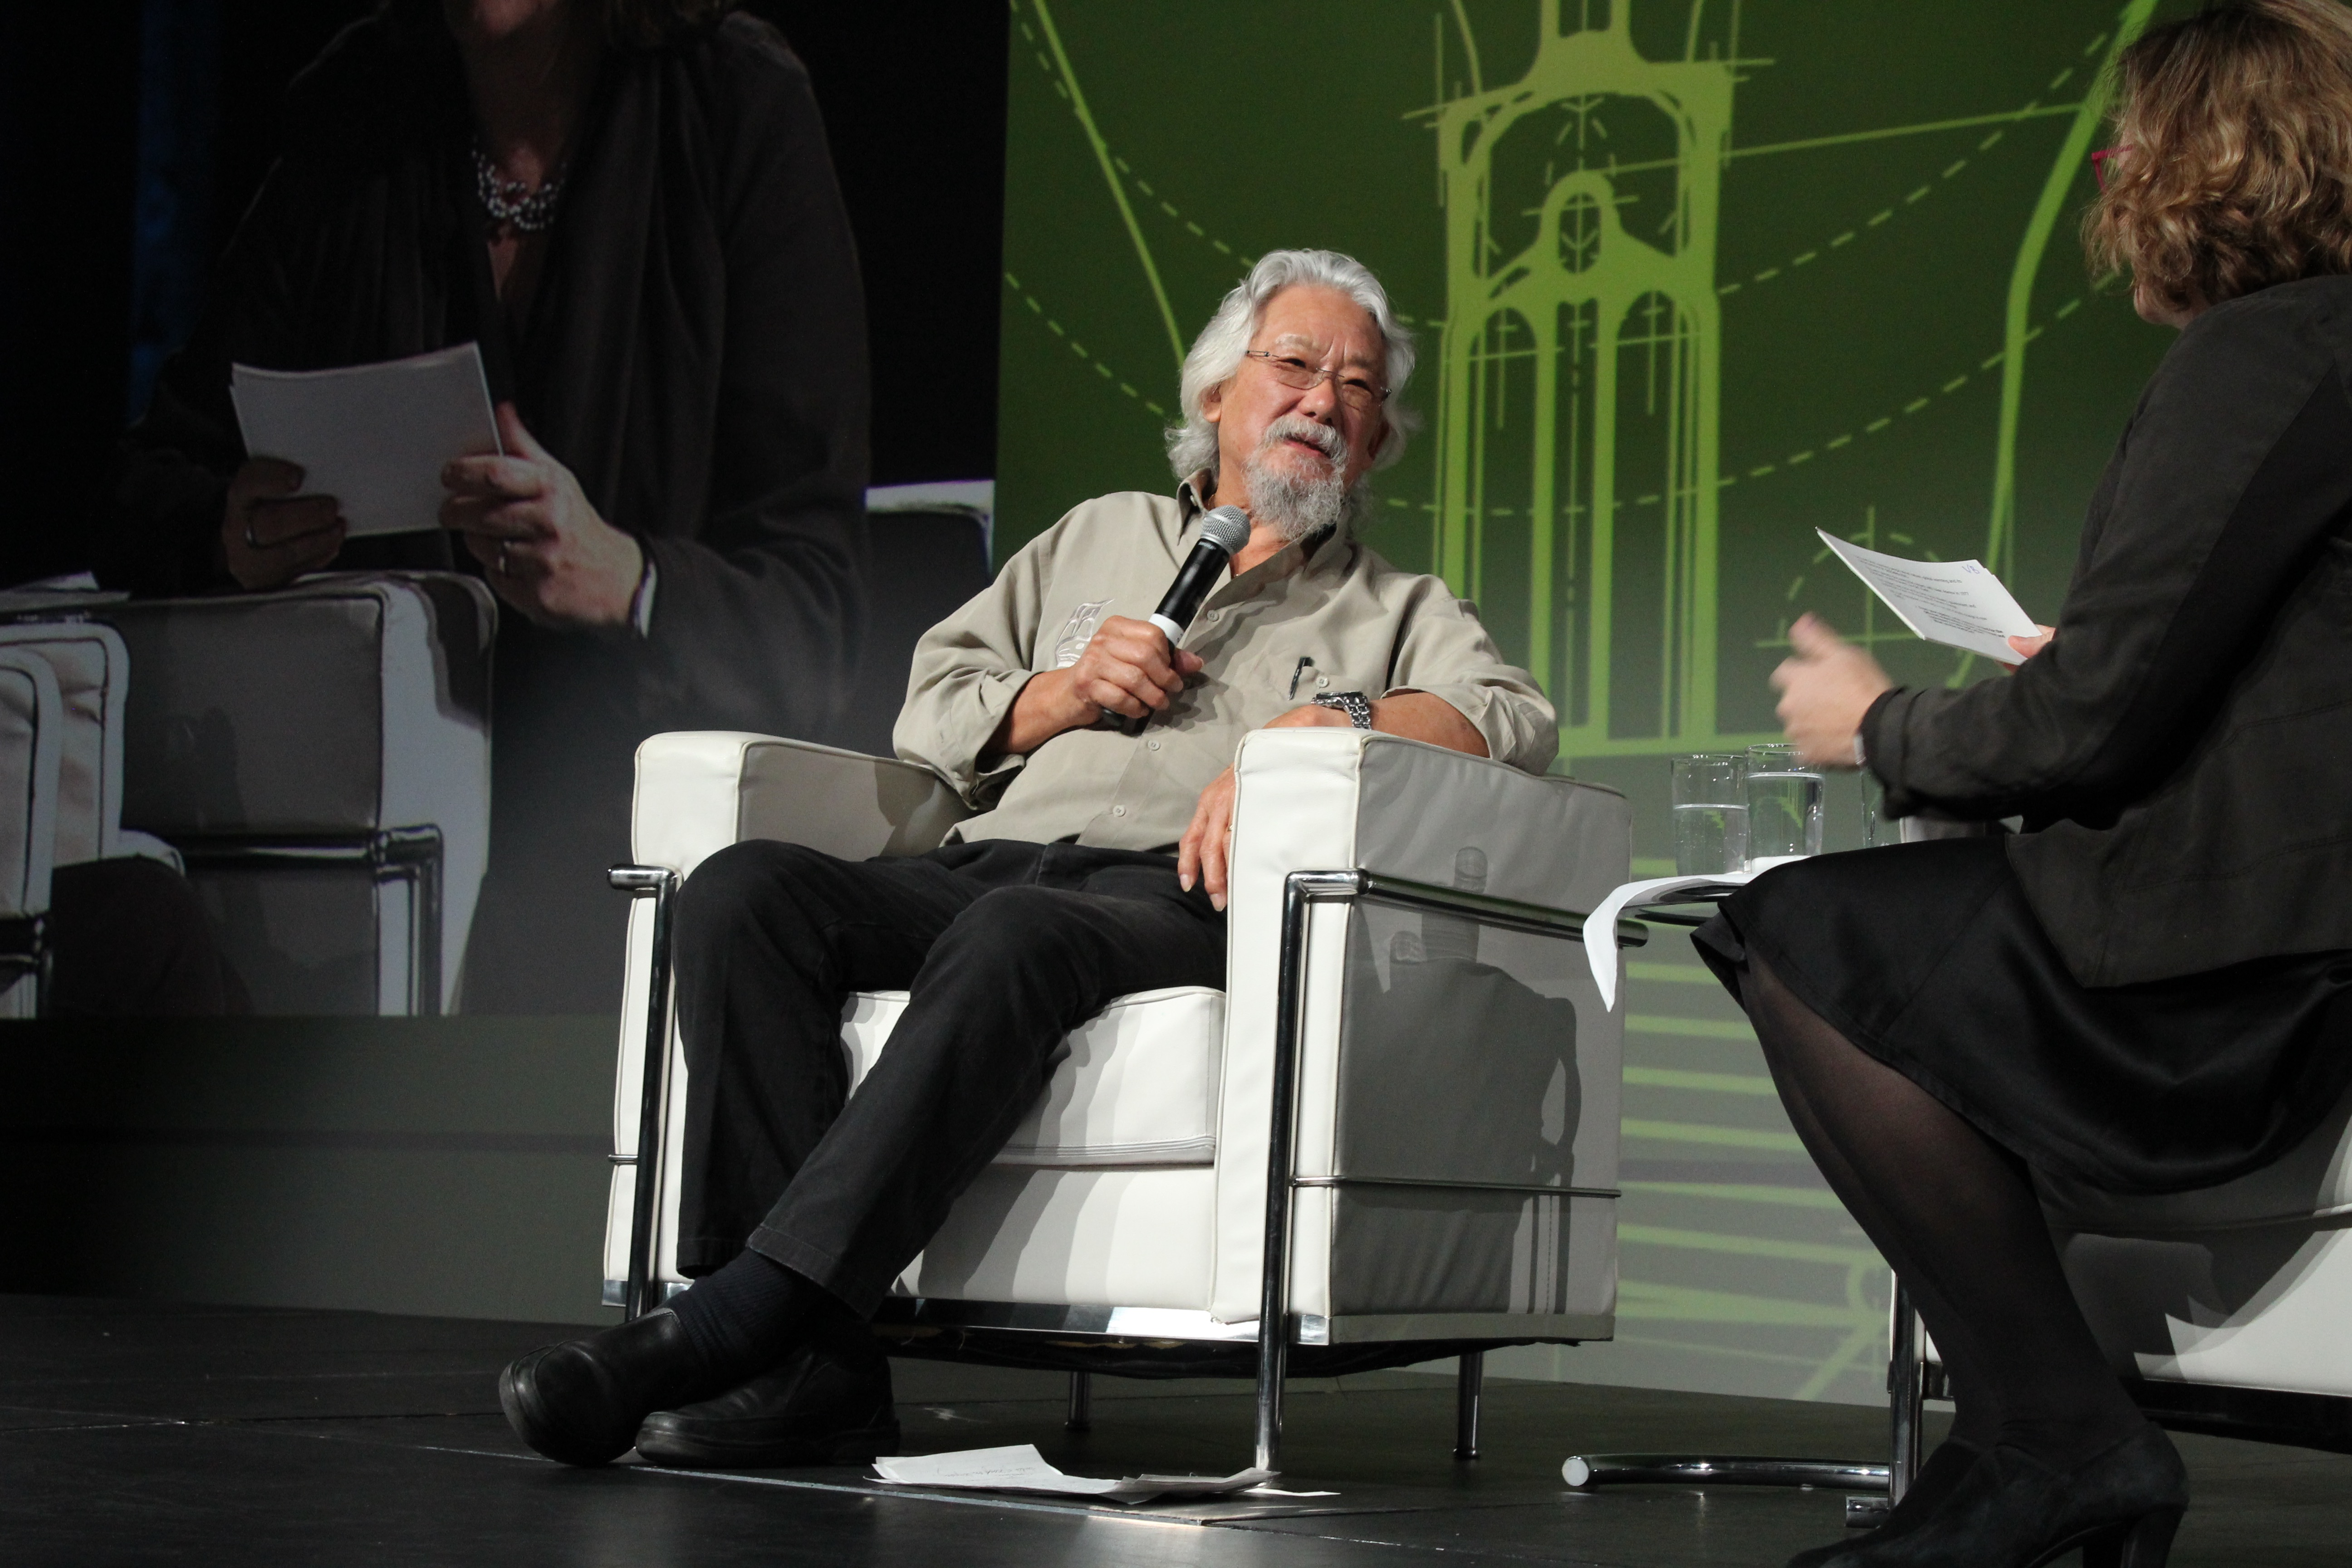 David Suzuki during his talk at the Montreal Summit on Innovation on Monday. Photo by Gregory Todaro.